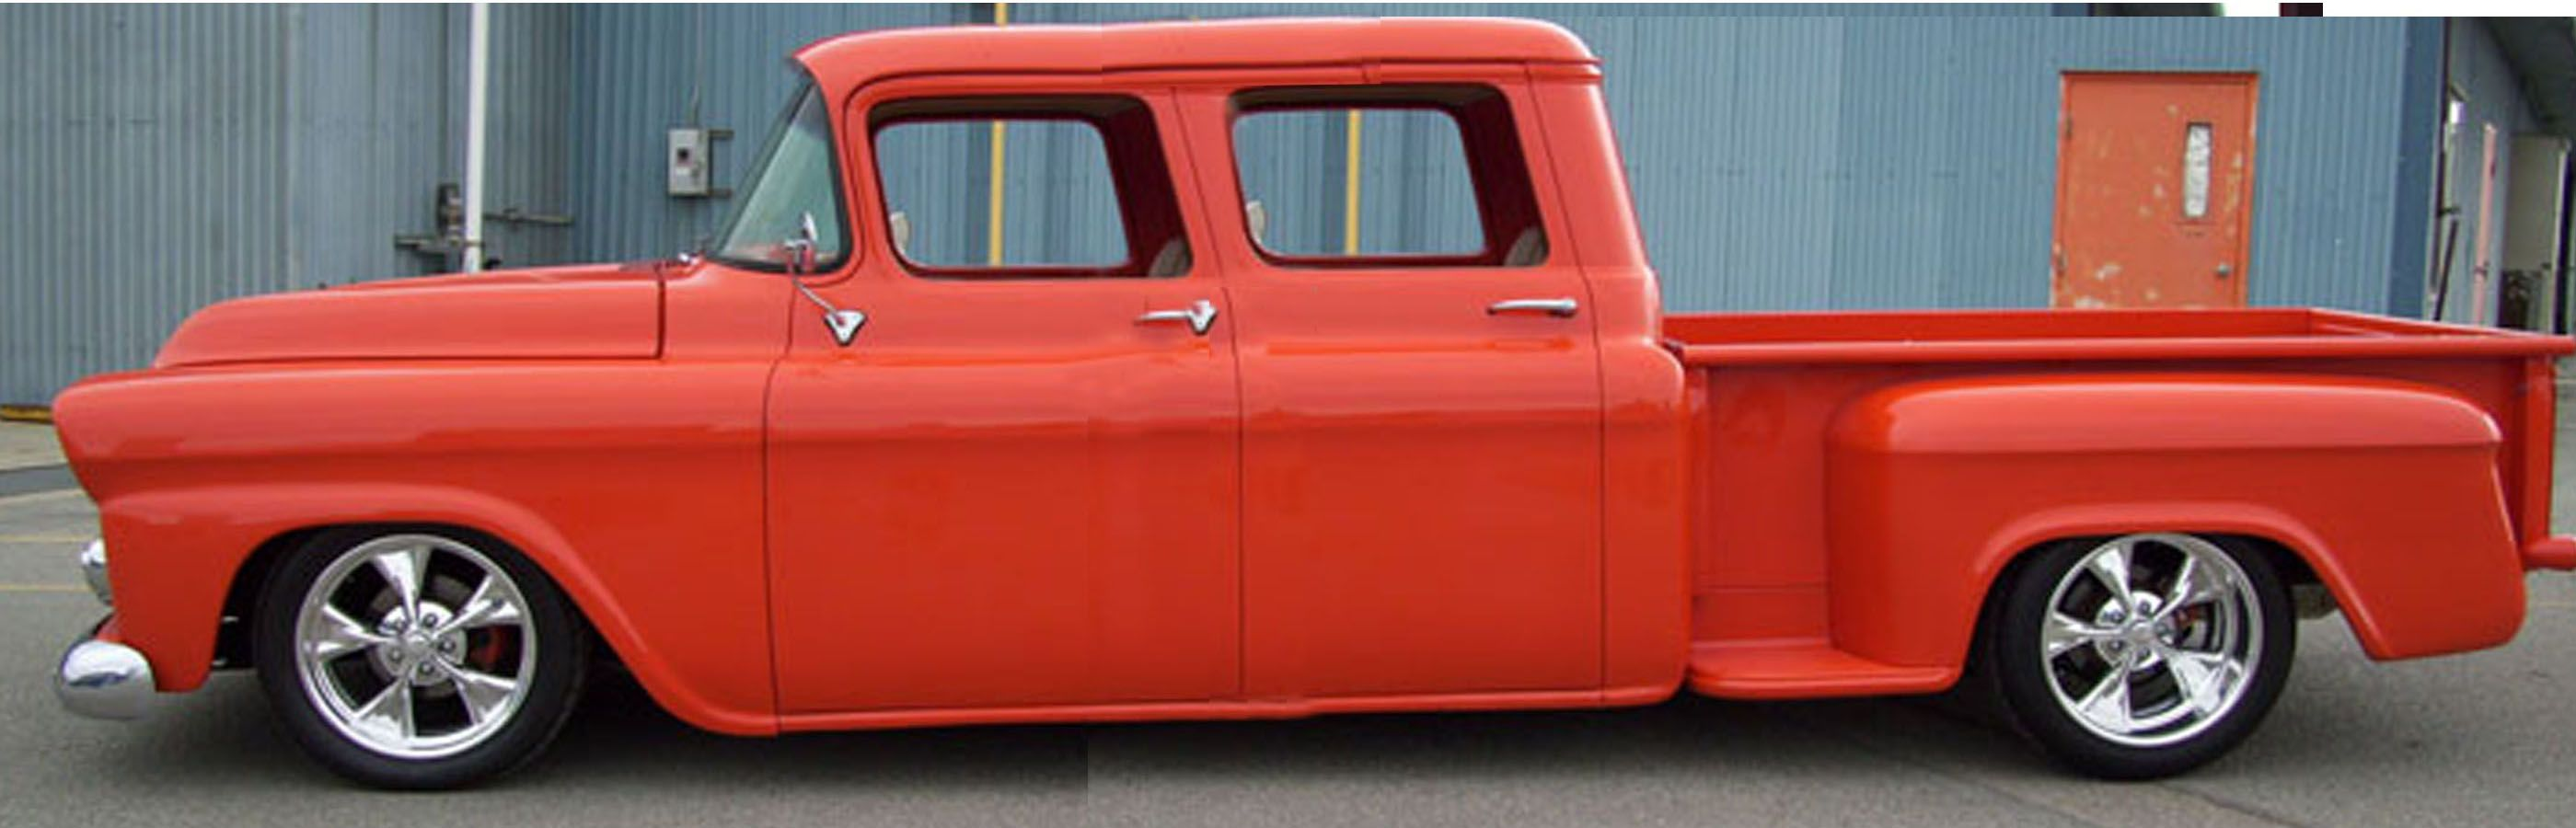 Thinking about building a 4 door 59 Chevy | Things | Pinterest ...